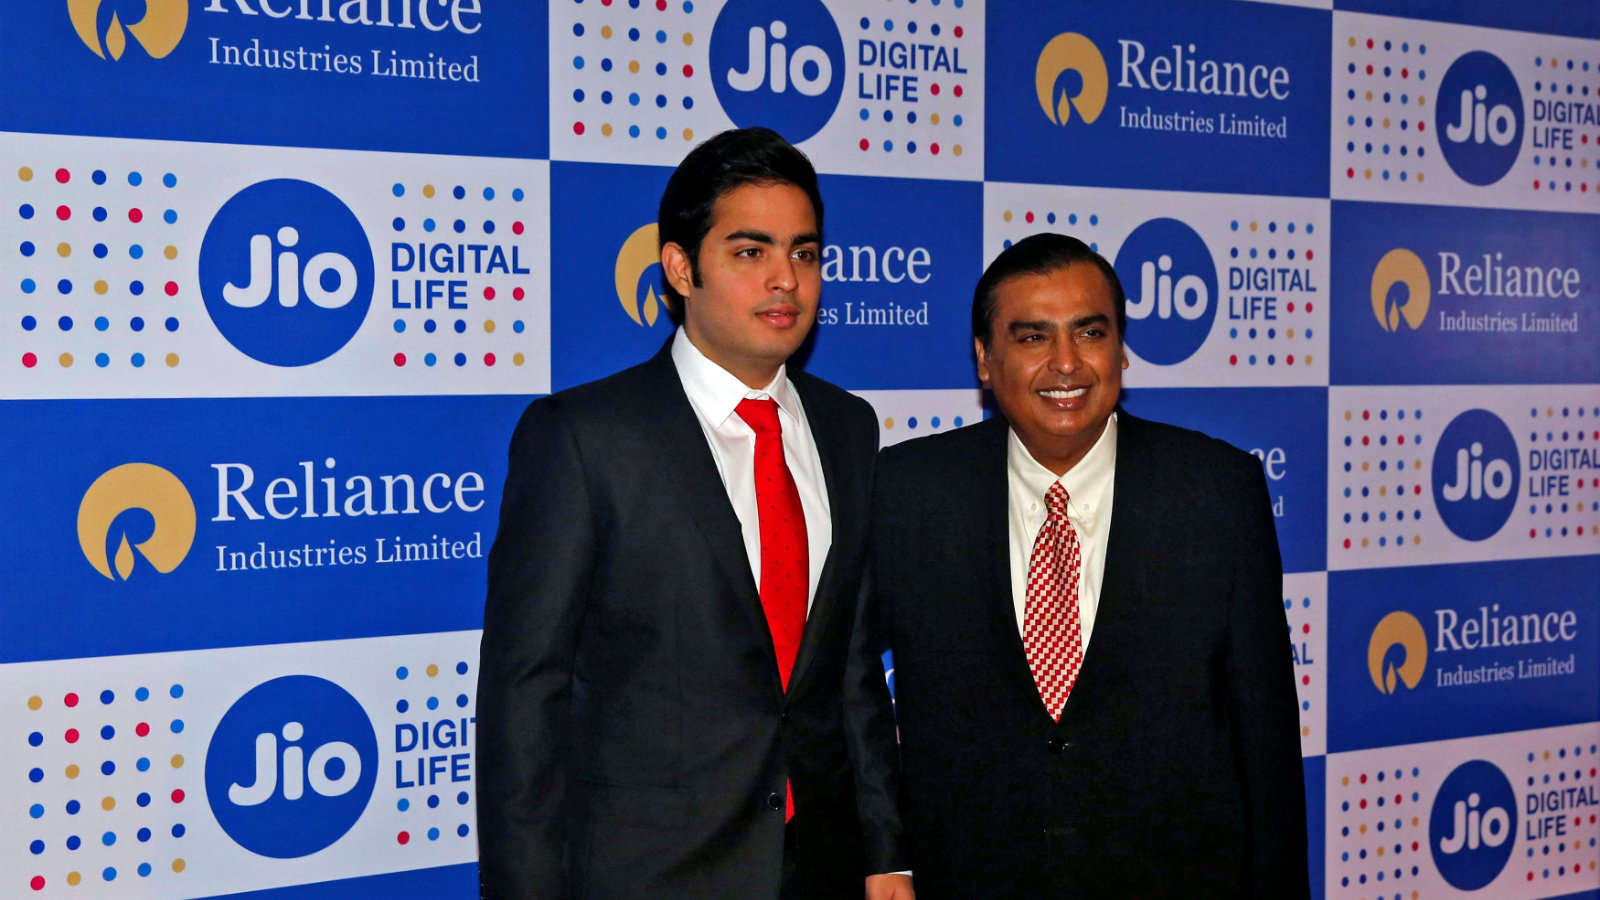 Mukesh Ambani (R), chairman of Reliance Industries Ltd, poses with his son Akash before addressing the company's annual general meeting in Mumbai, India September 1, 2016.